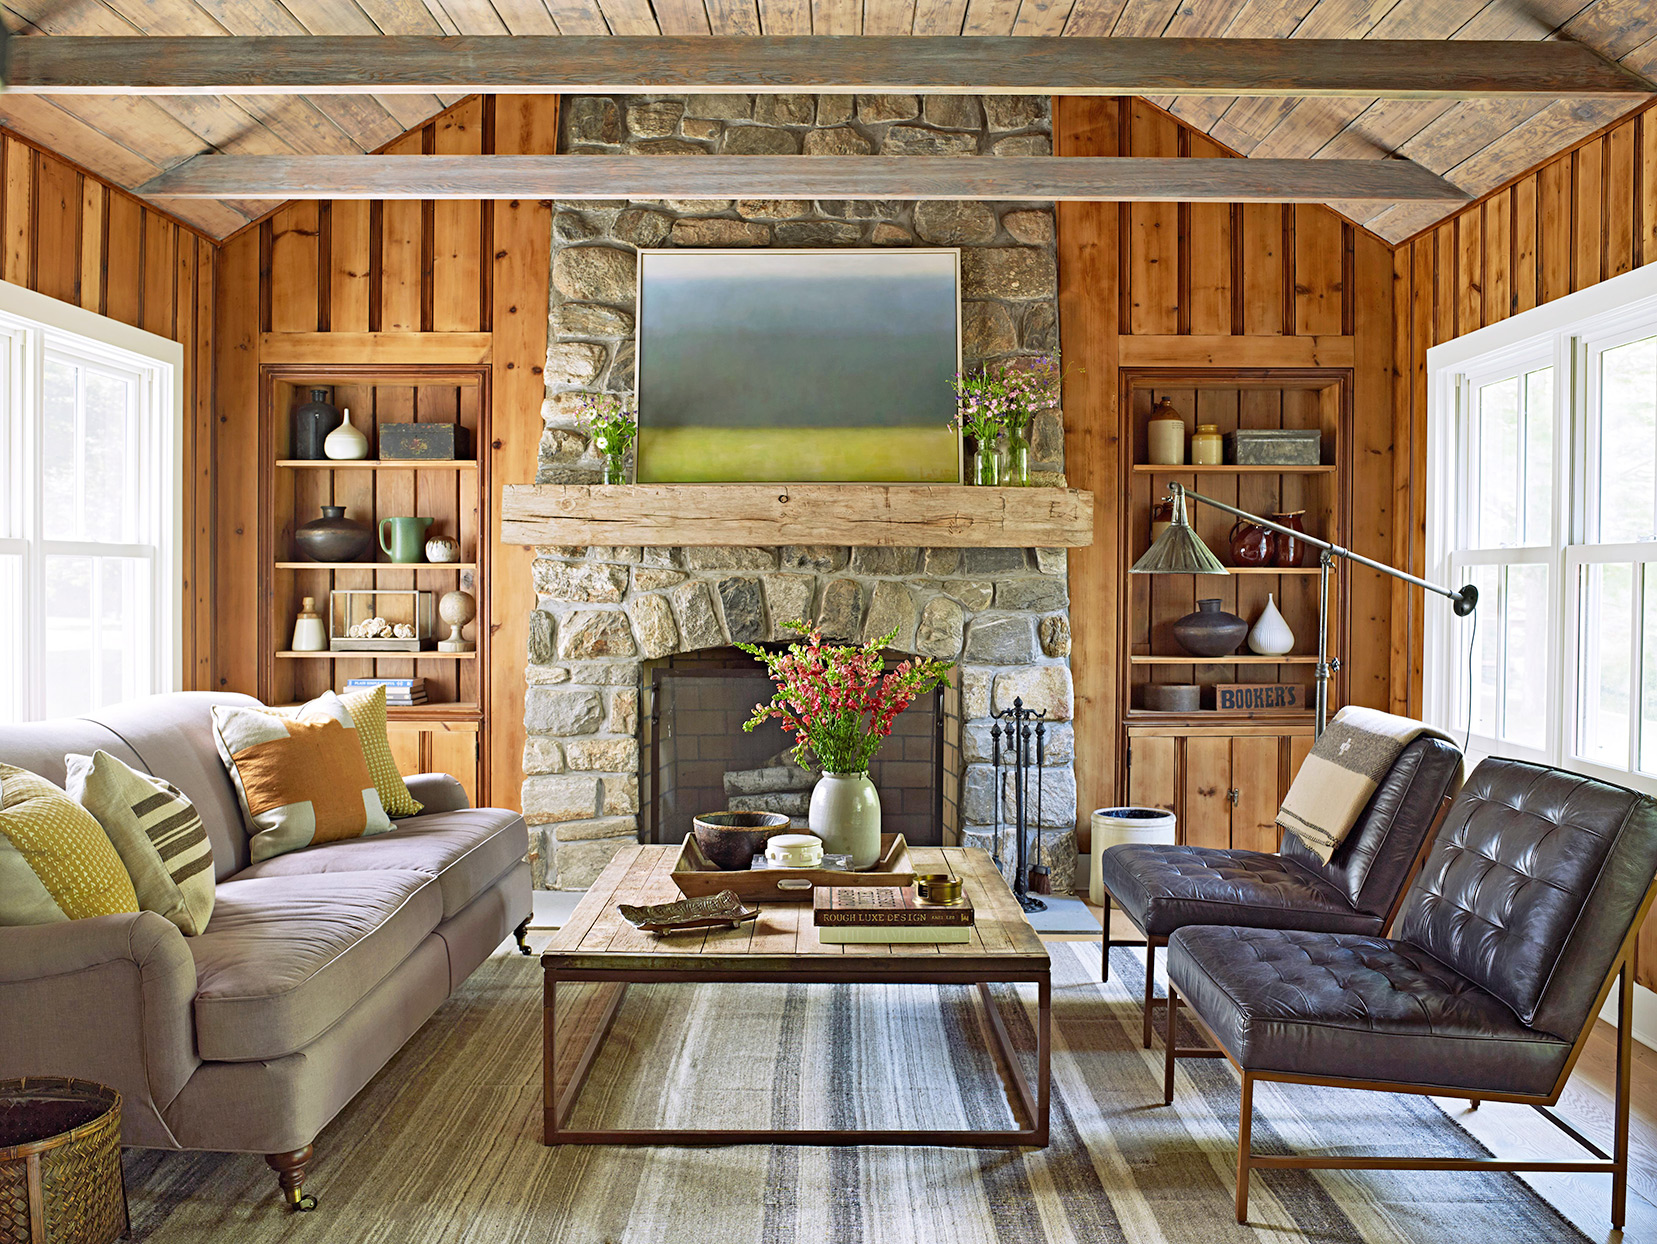 rustic-style living area